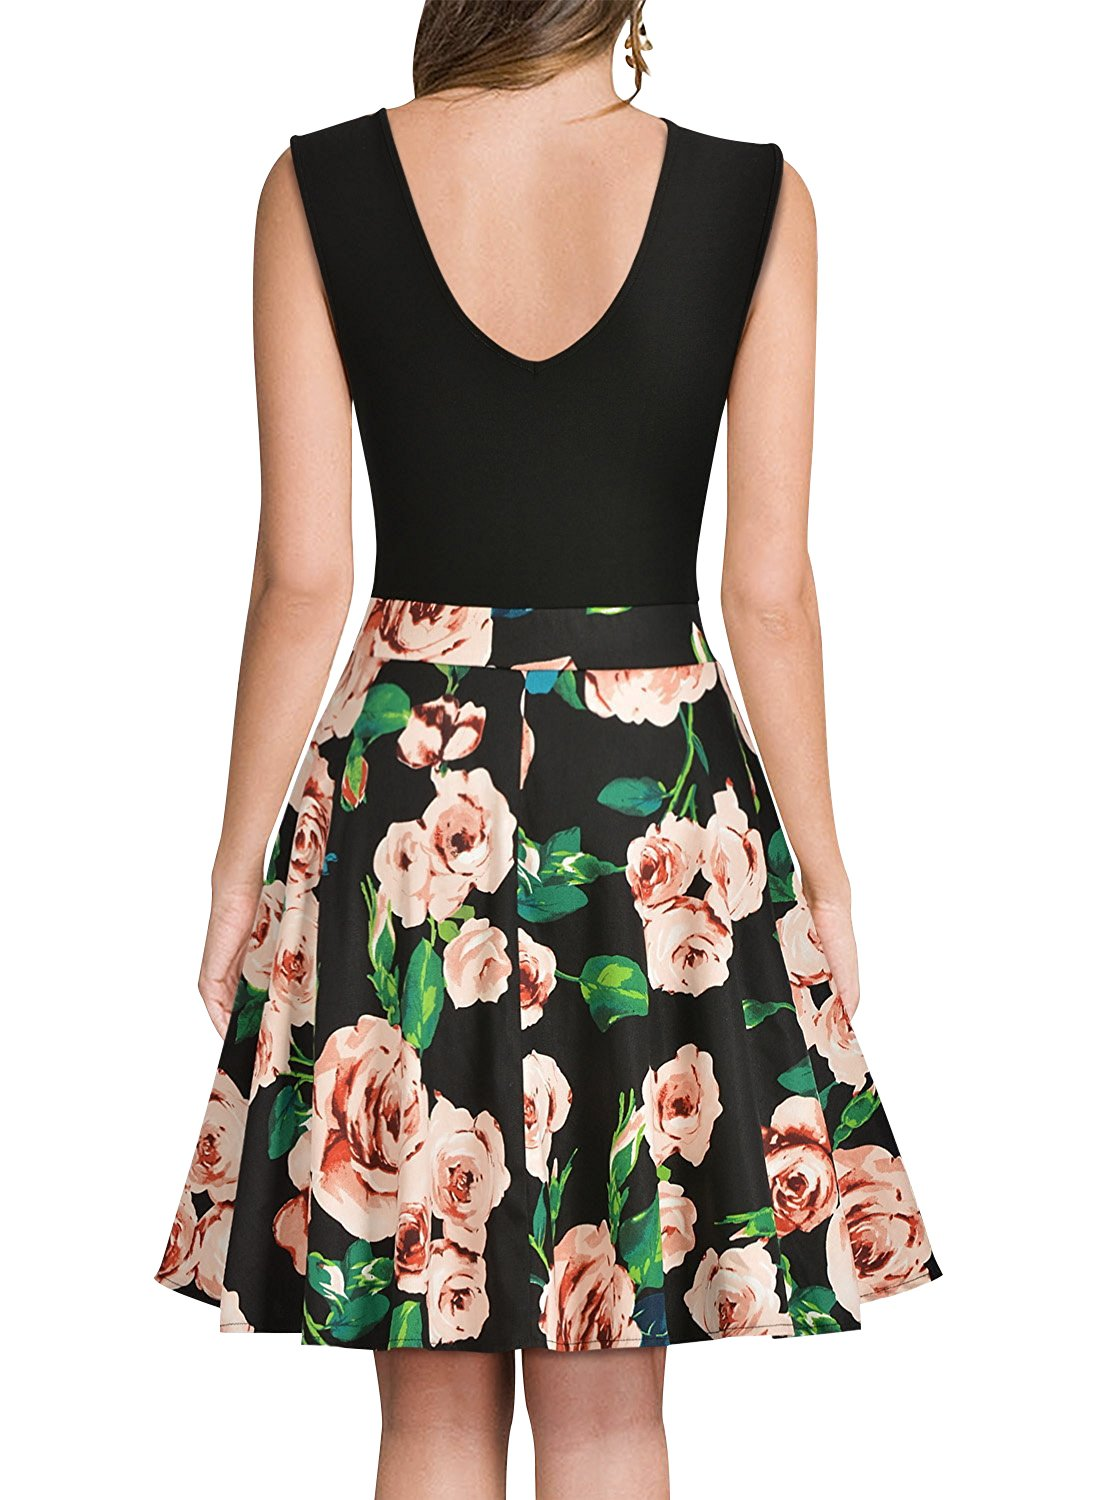 Yidarton Women's Summer Casual V Neck Flare Floral Contrast Evening Party Short Mini Dress Black S by Yidarton (Image #2)